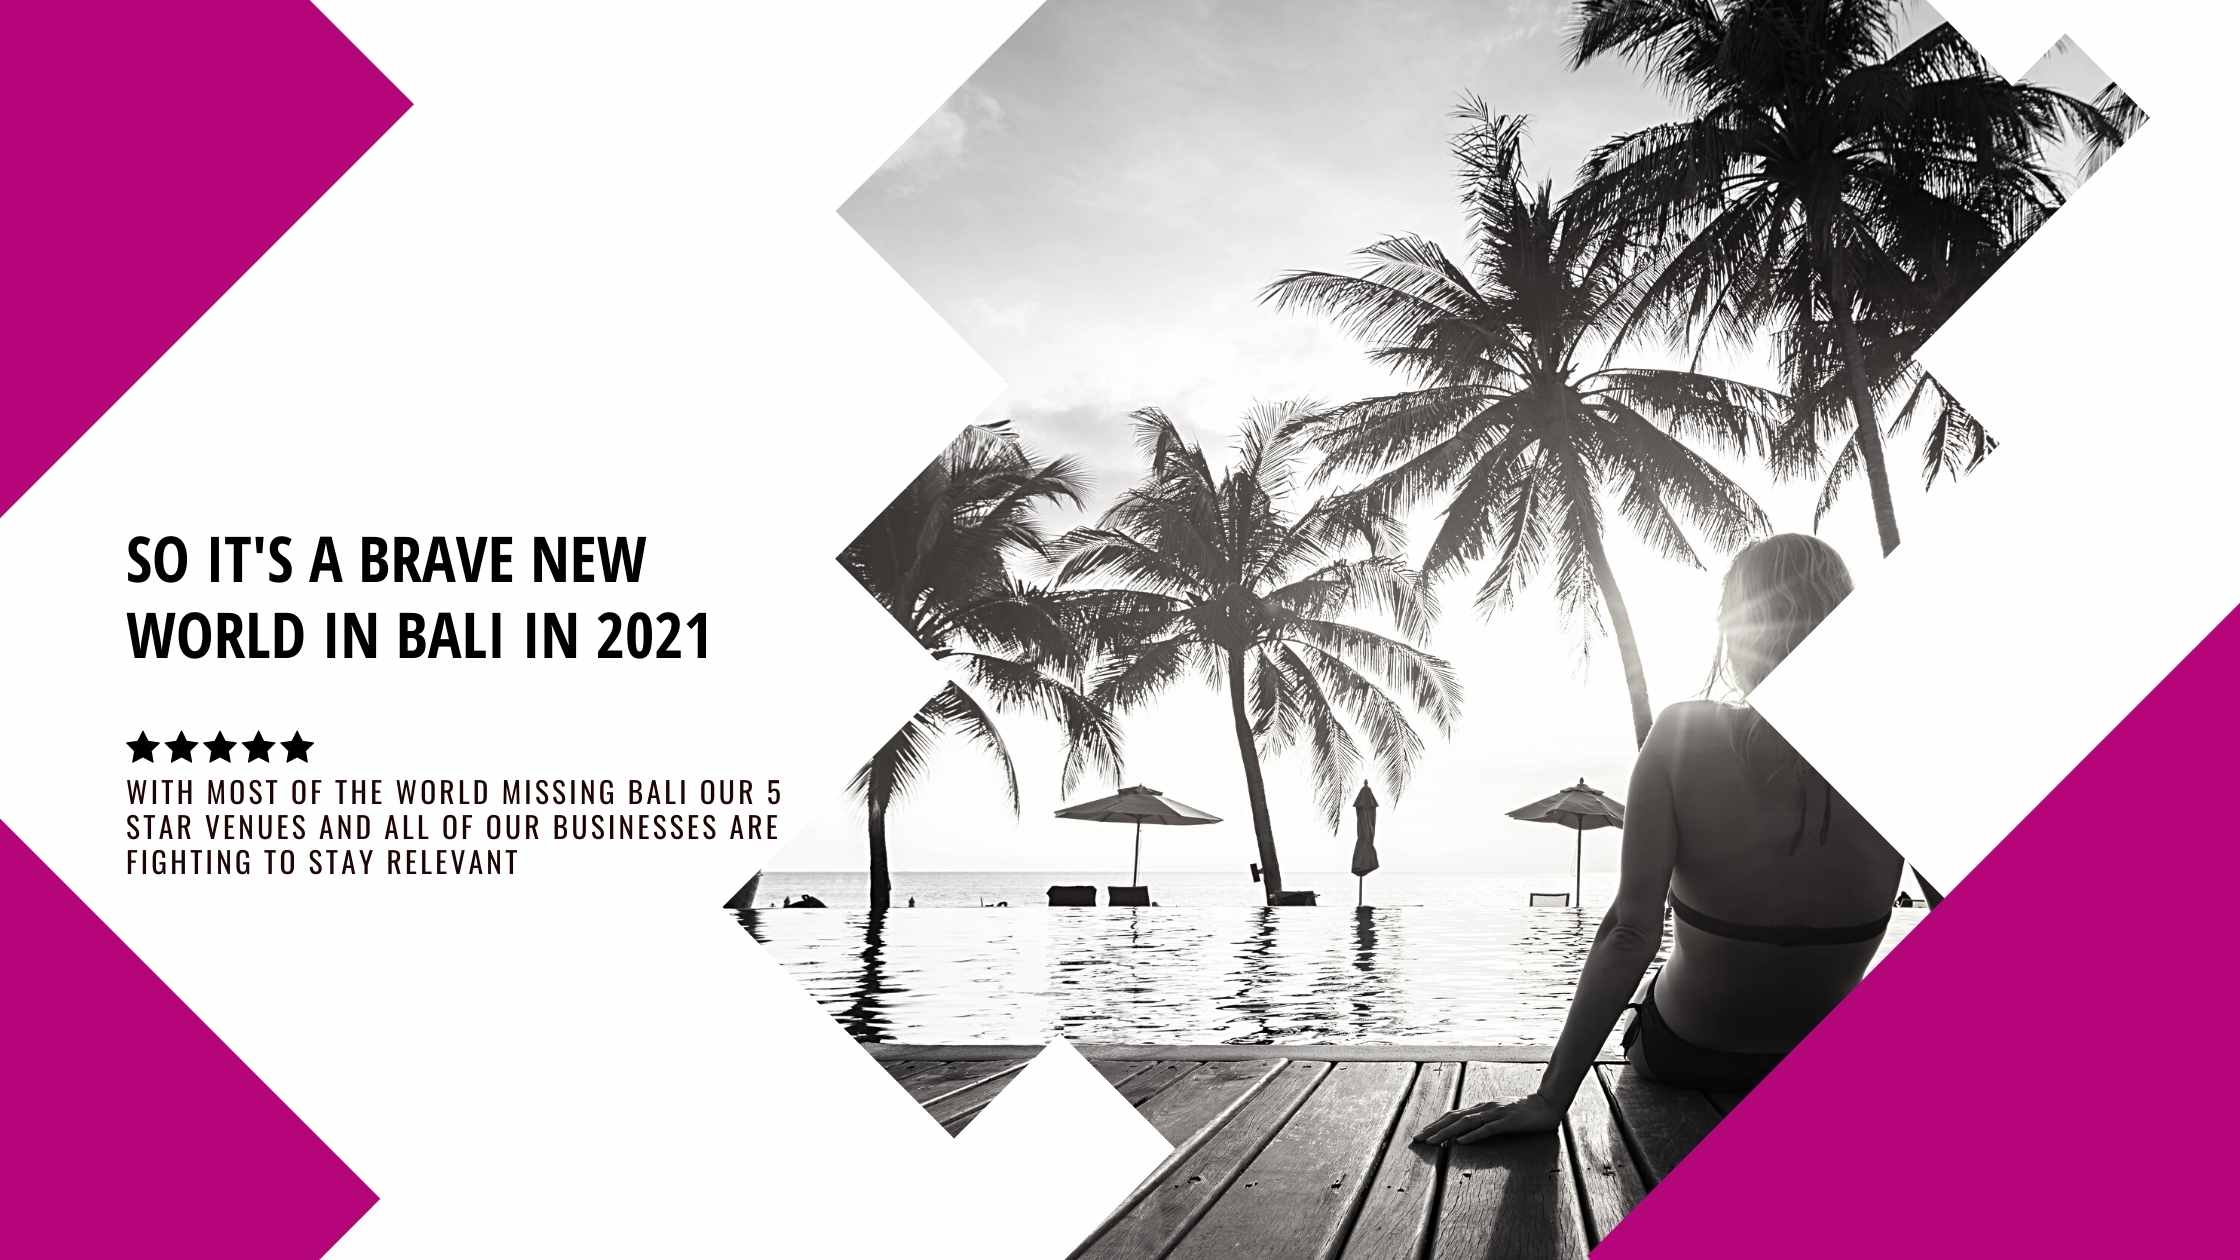 Bali Business in 2021